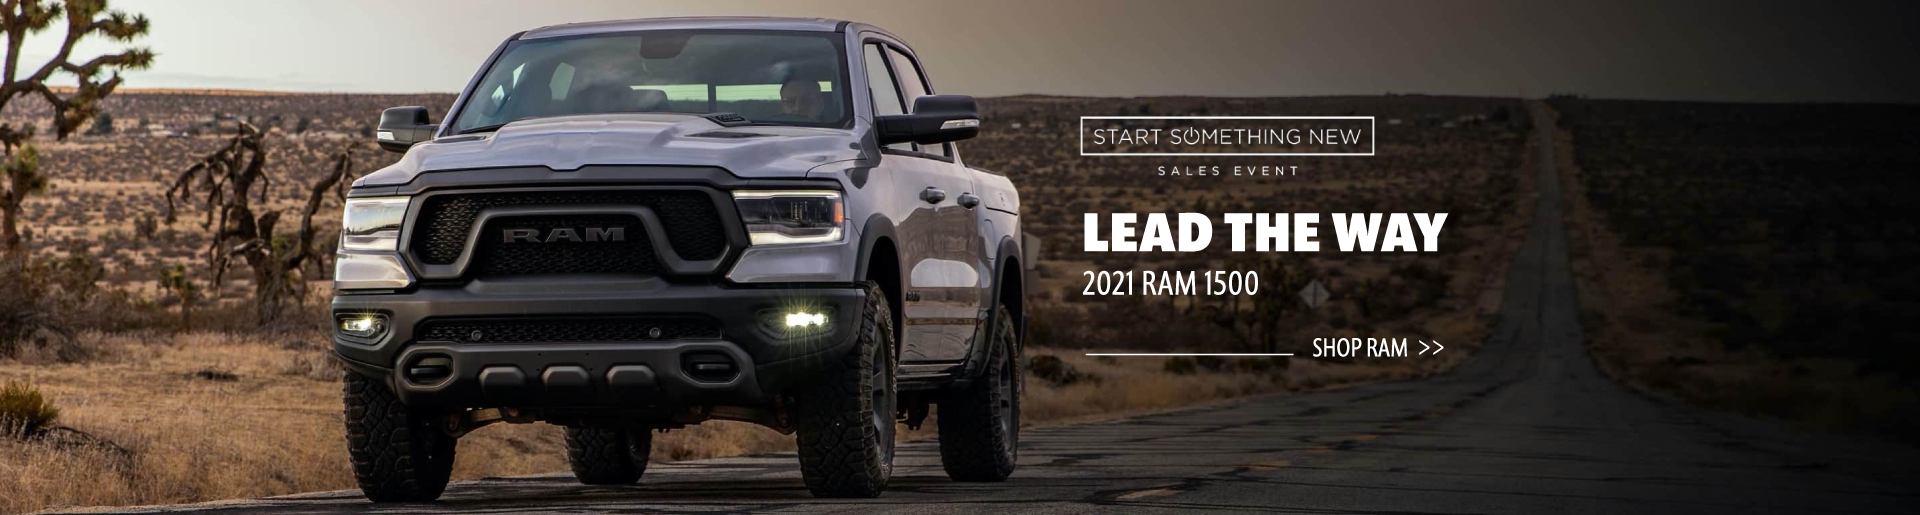 2021 Ram 1500 Generic- January 2021